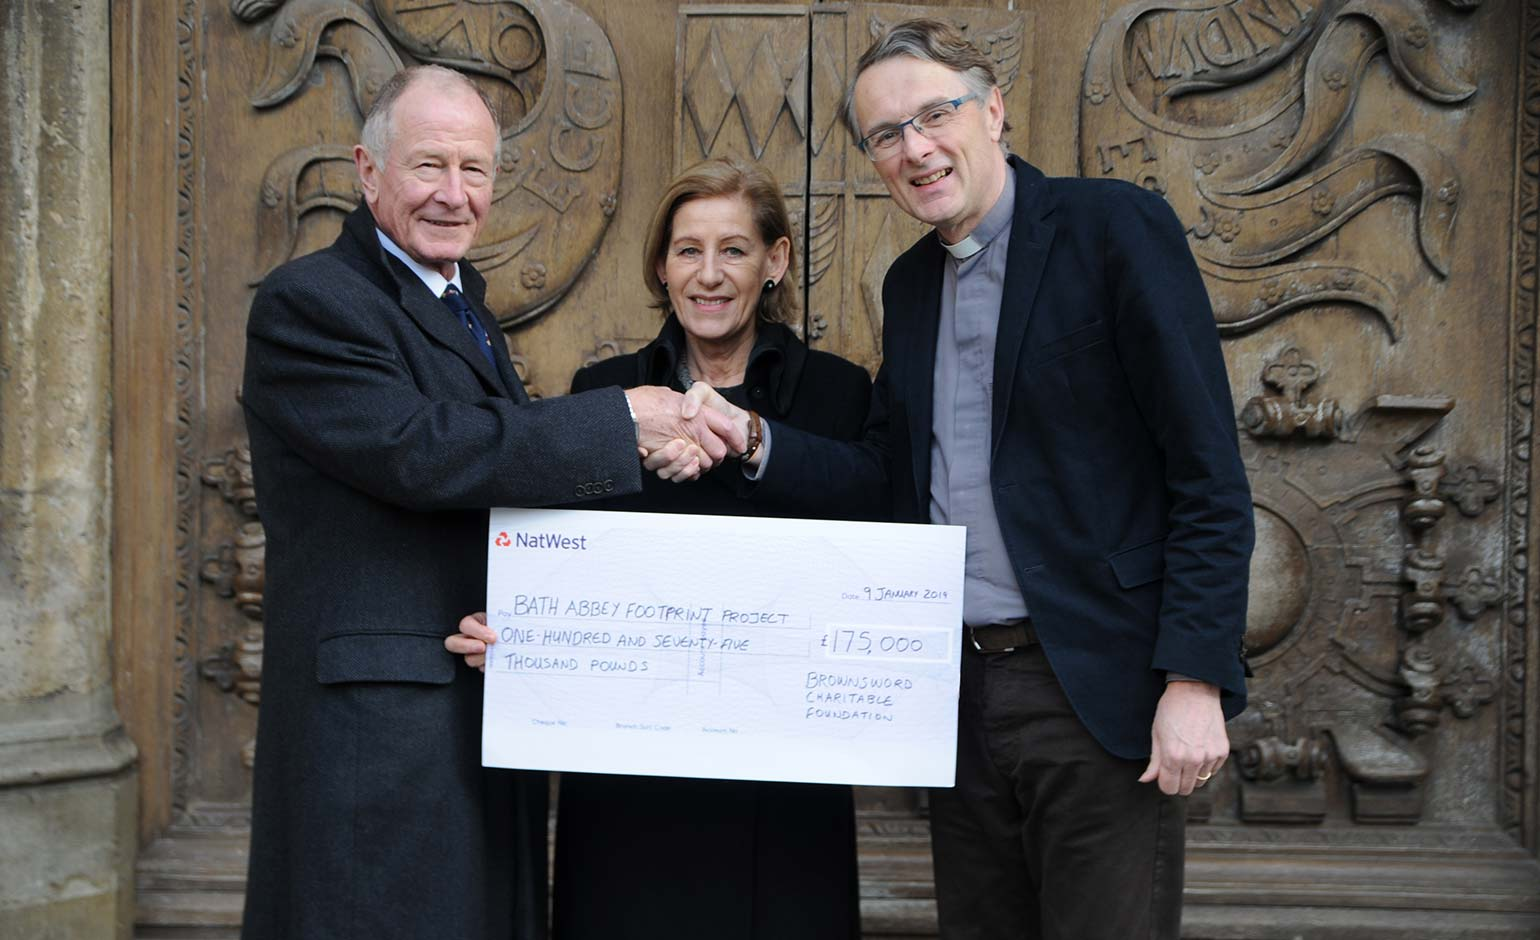 Brownsword Charitable Foundation presents £175k cheque to Bath Abbey